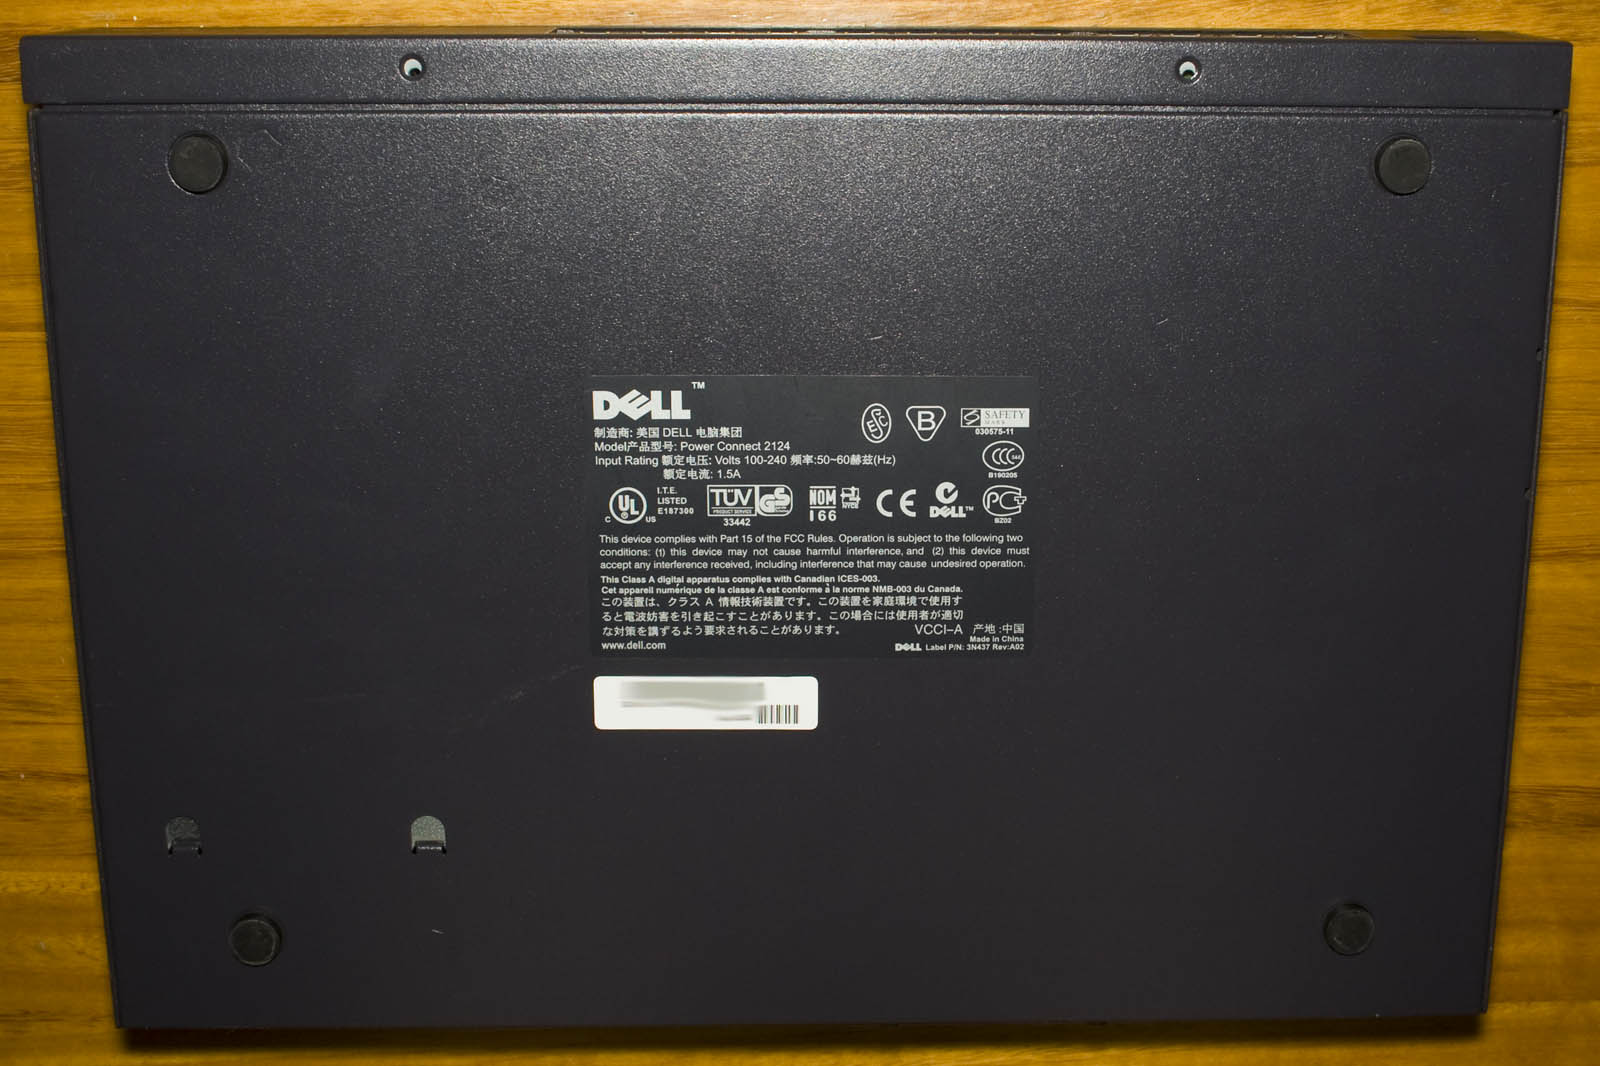 Inside the Dell Power Connect 2124 24 Port 10/100 Switch (Dated 2003 ...